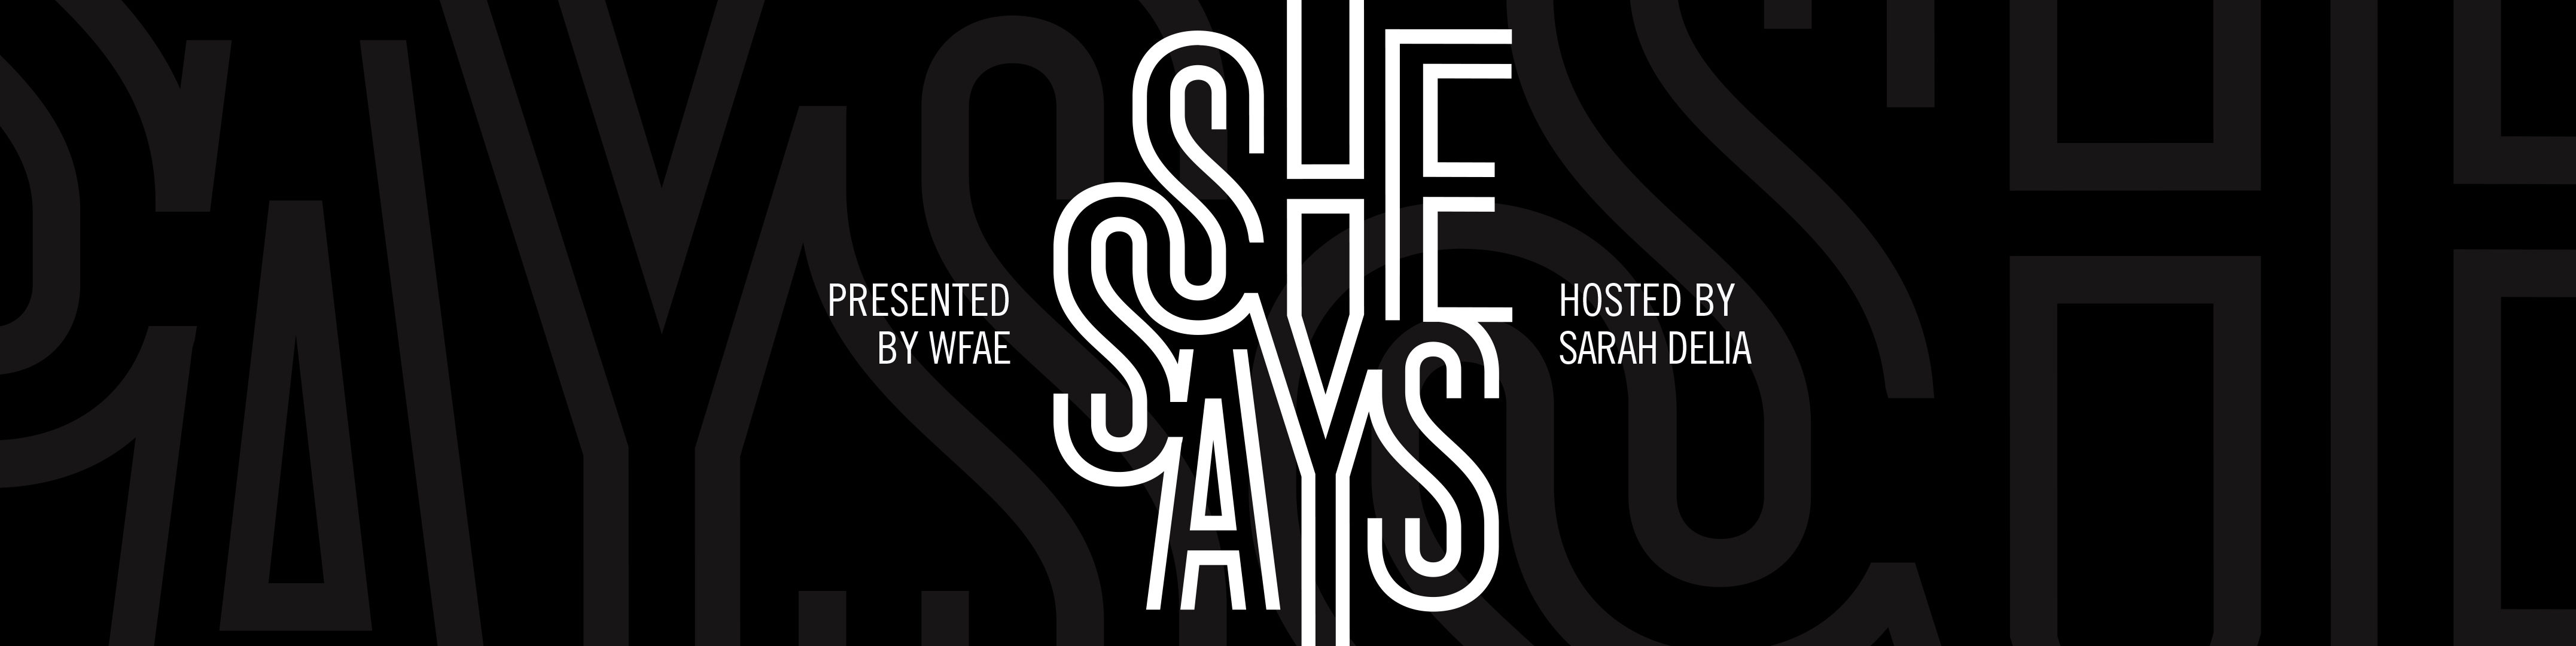 She Says – An Investigative Podcast Series Presented by WFAE